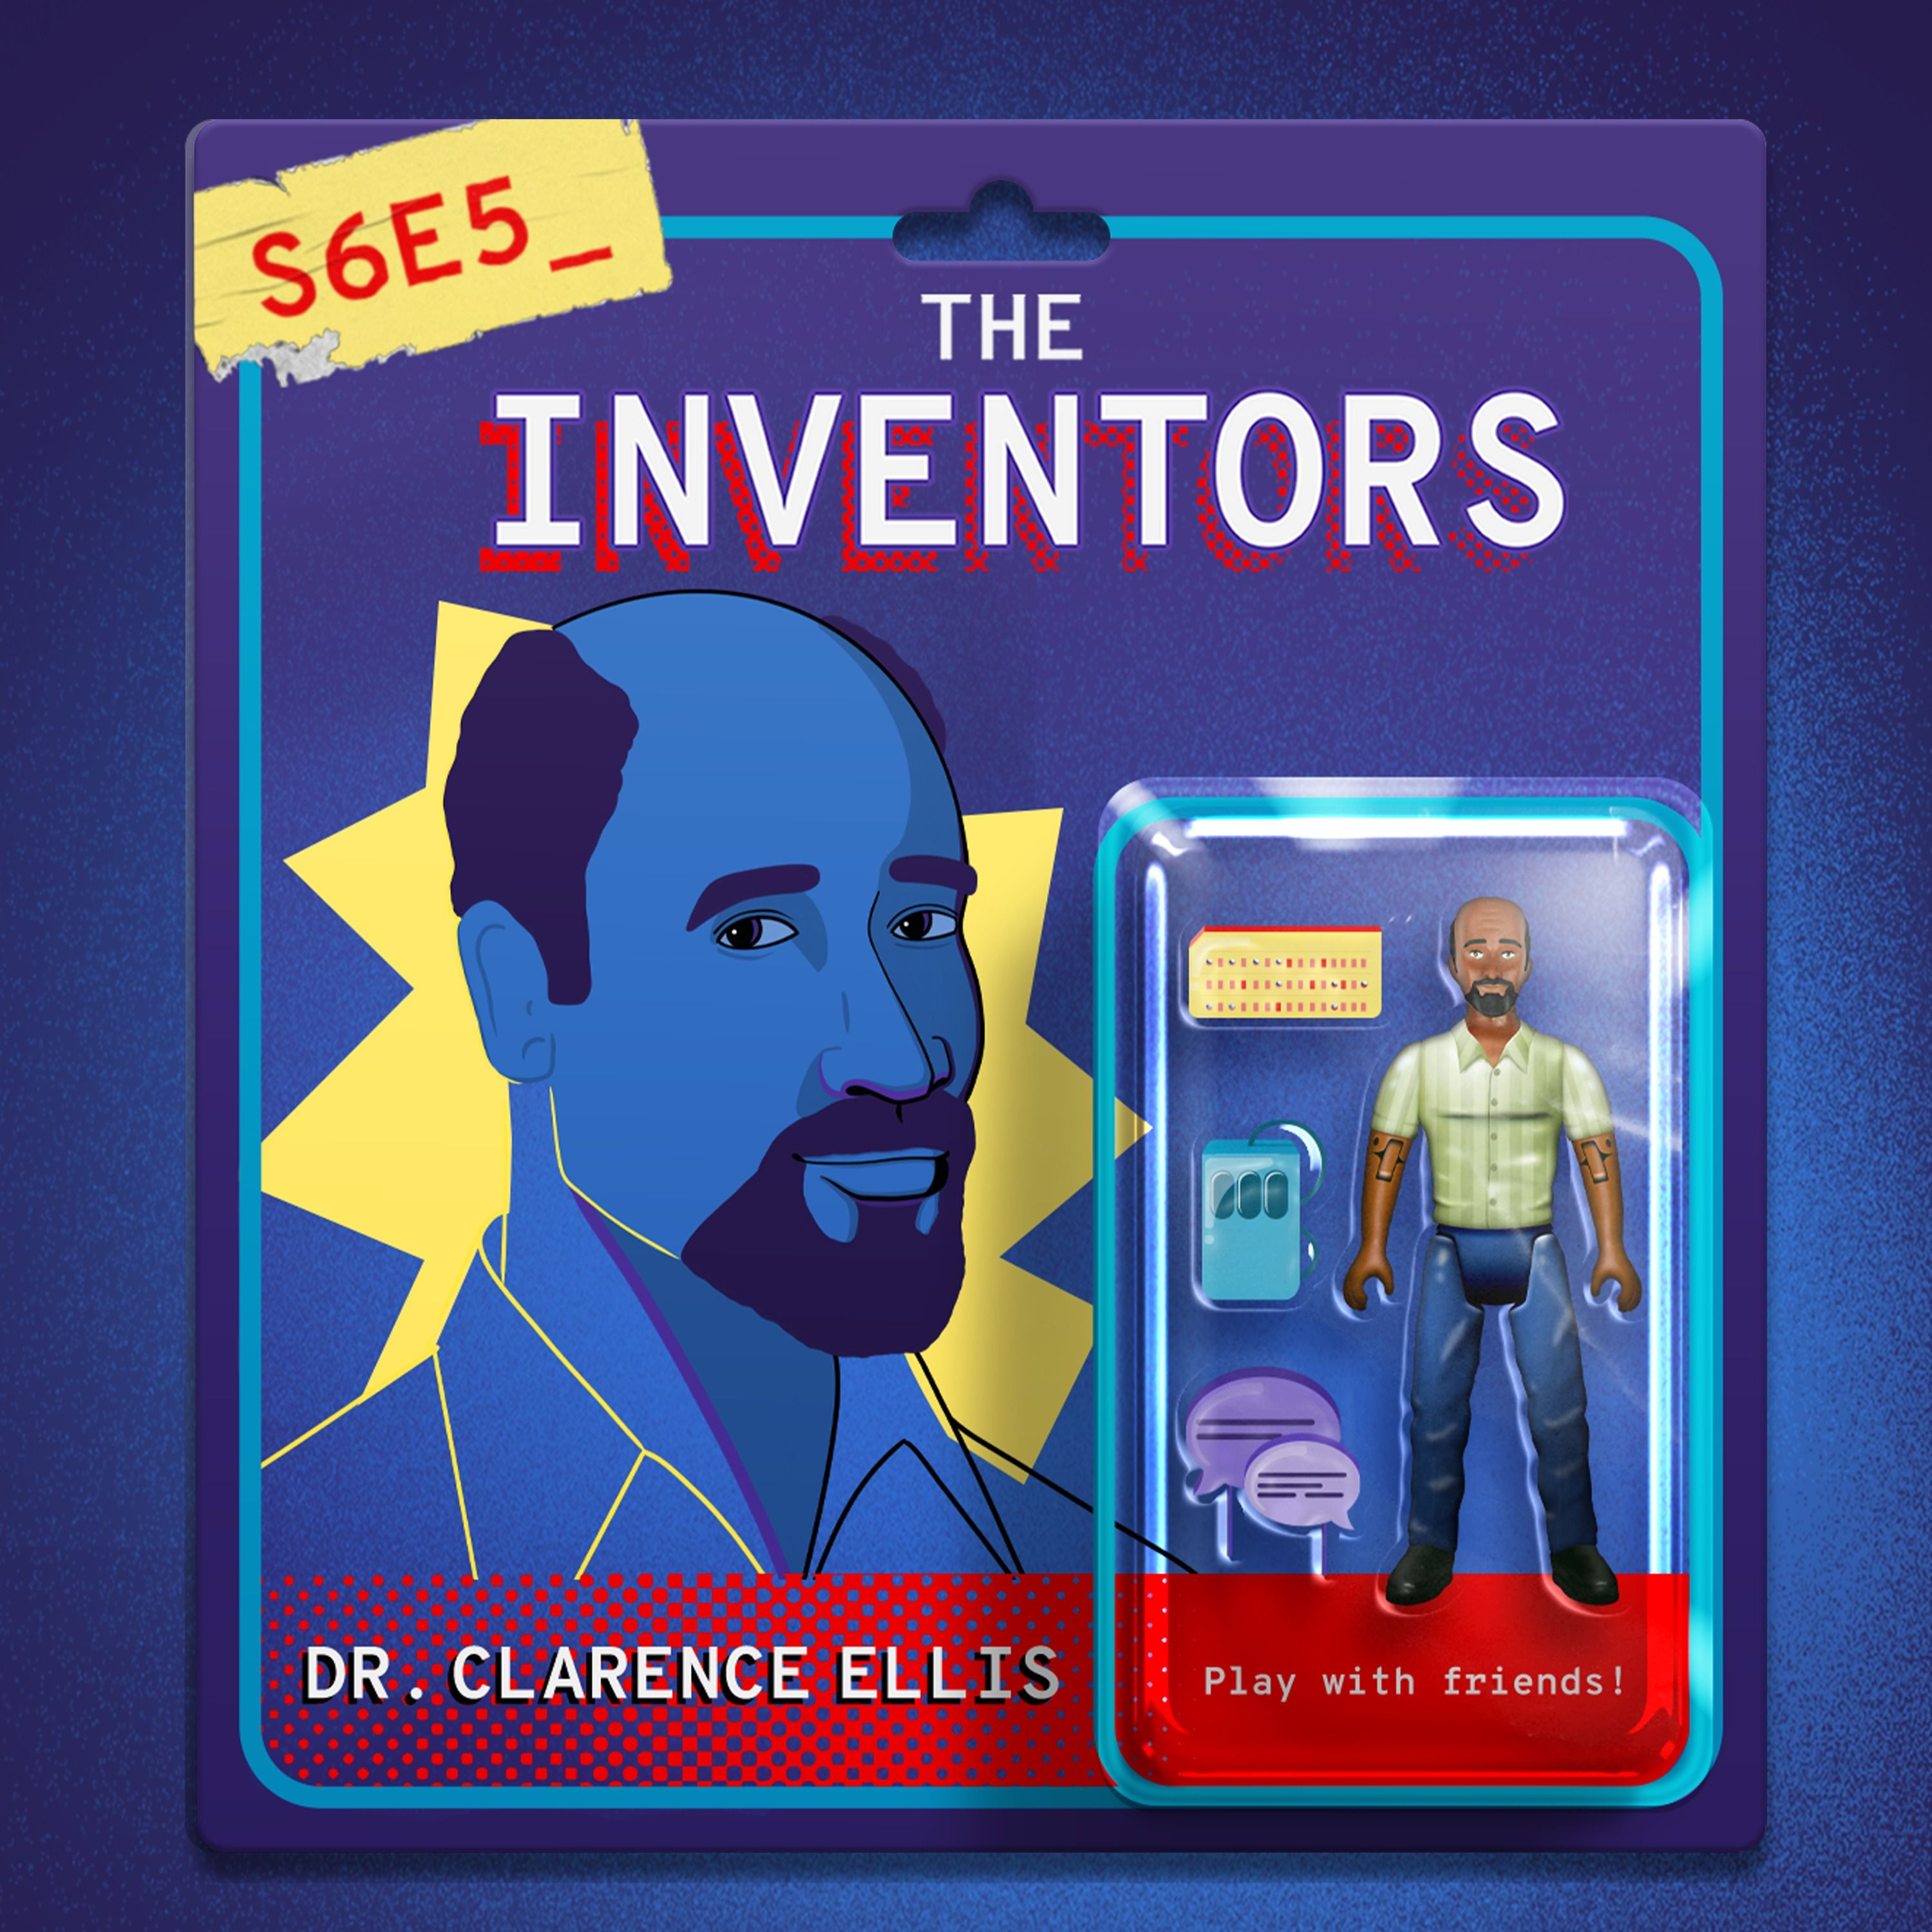 Dr. Clarence Ellis: The Developer Who Helped Us Collaborate